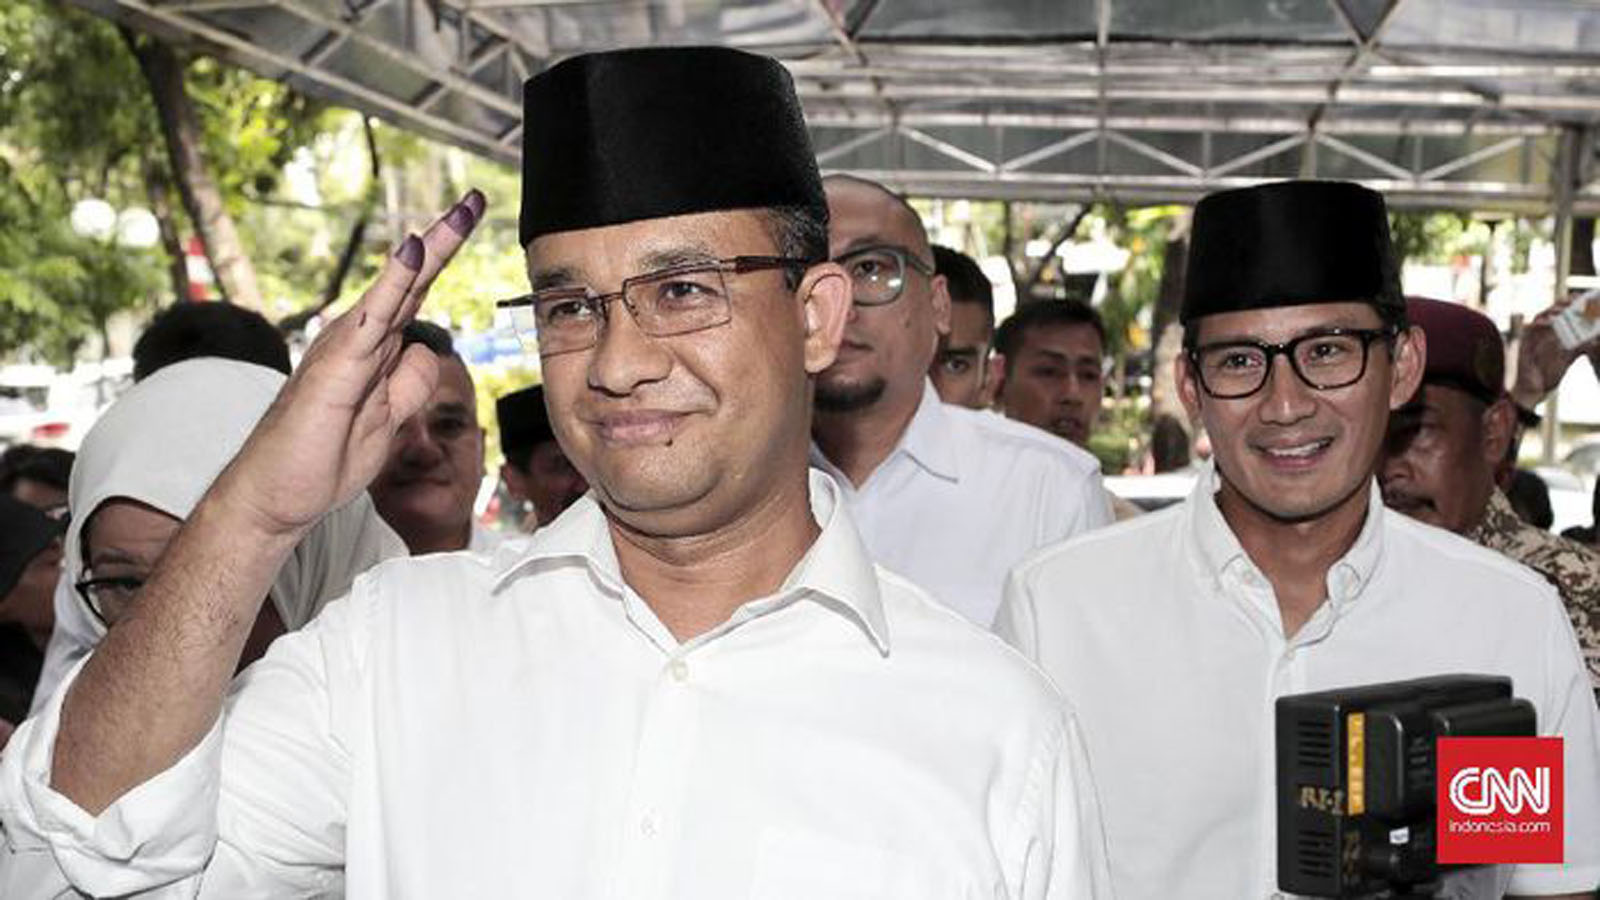 Anies - Sandiaga (CNN Indonesia)